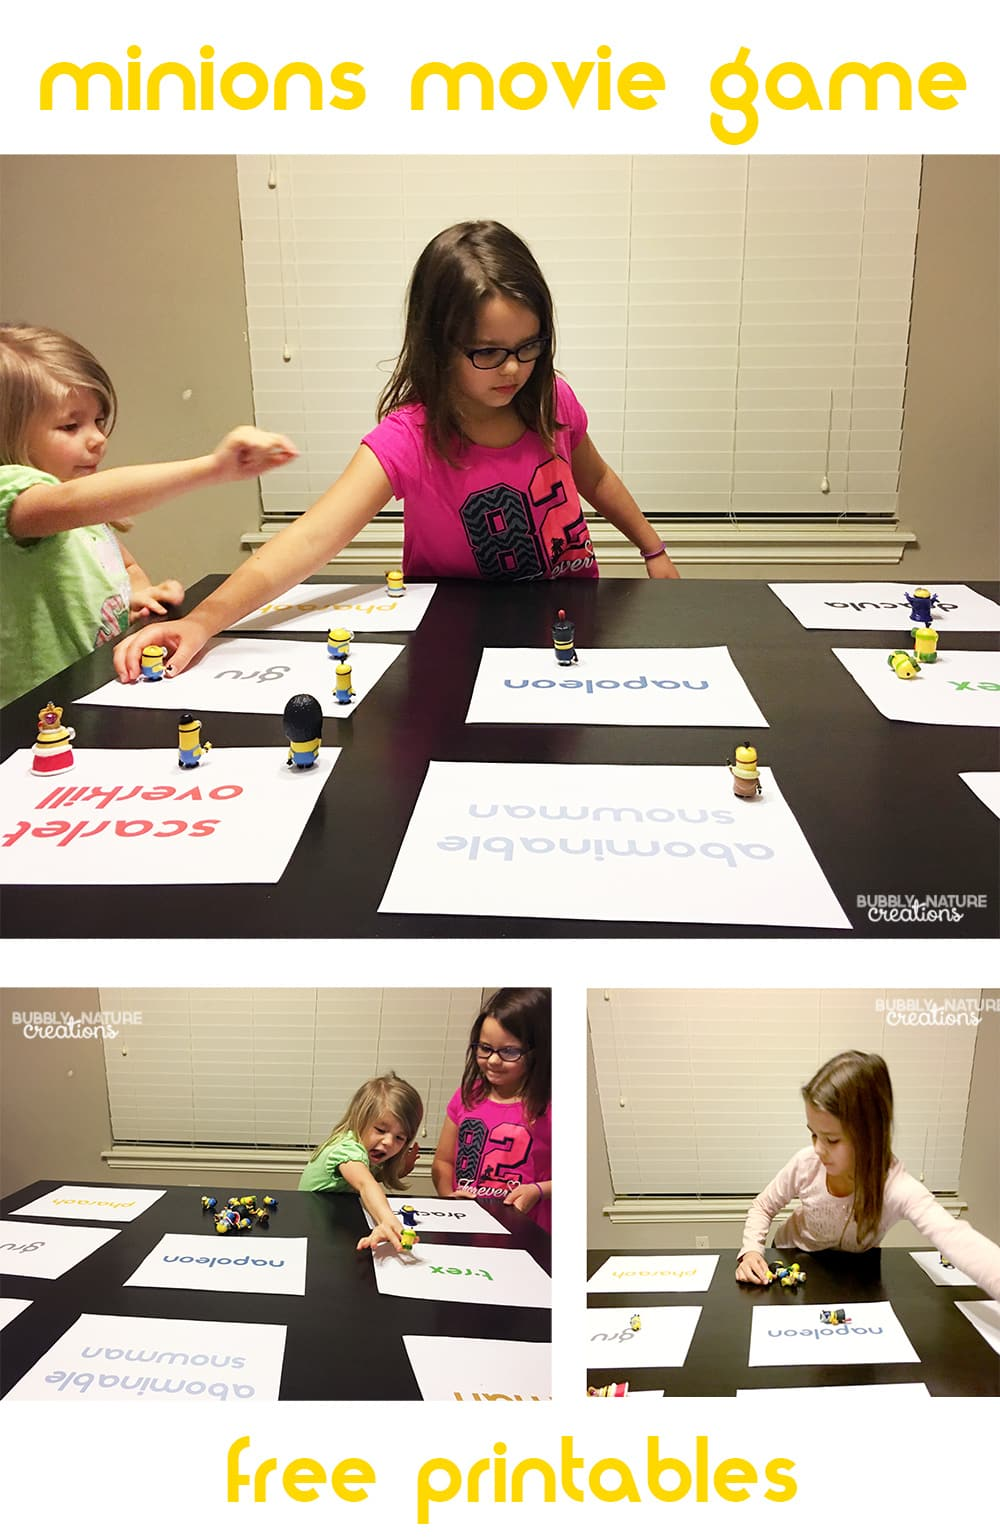 Minions Movie Game with free printables!